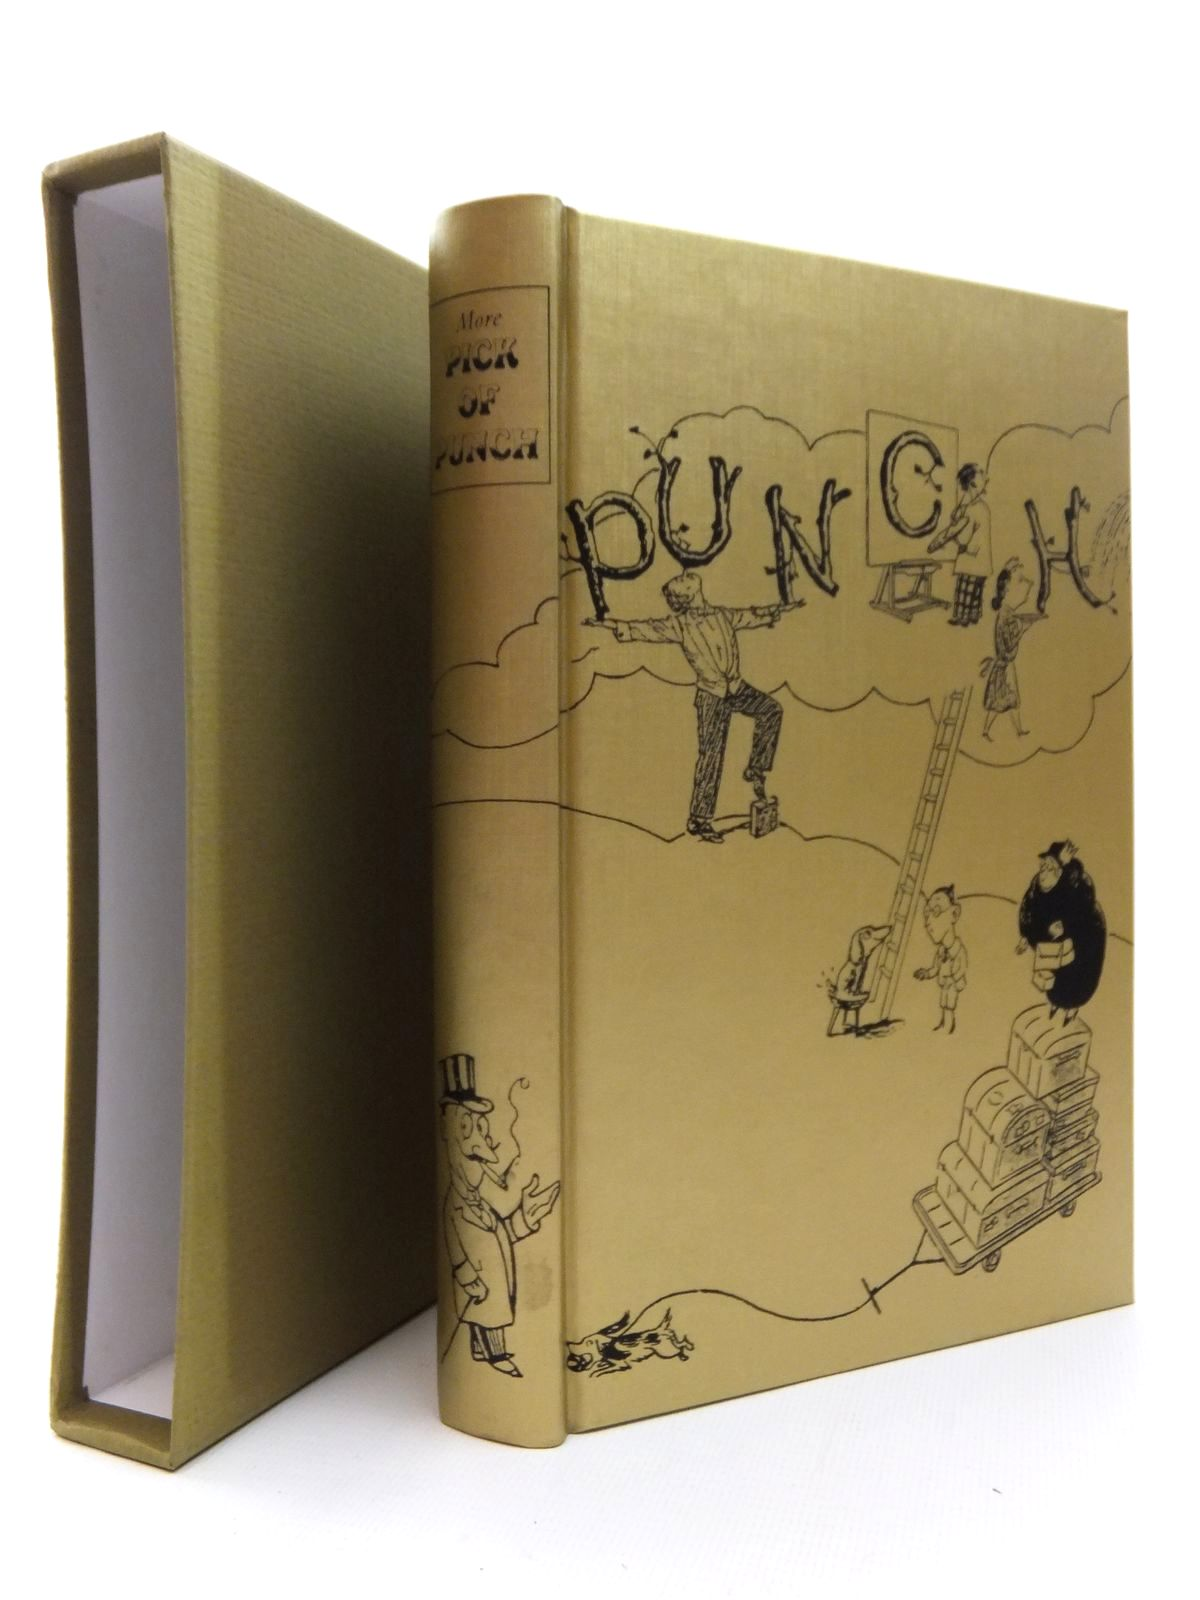 Photo of MORE PICK OF PUNCH written by Doran, Amanda-Jane published by Folio Society (STOCK CODE: 2123476)  for sale by Stella & Rose's Books